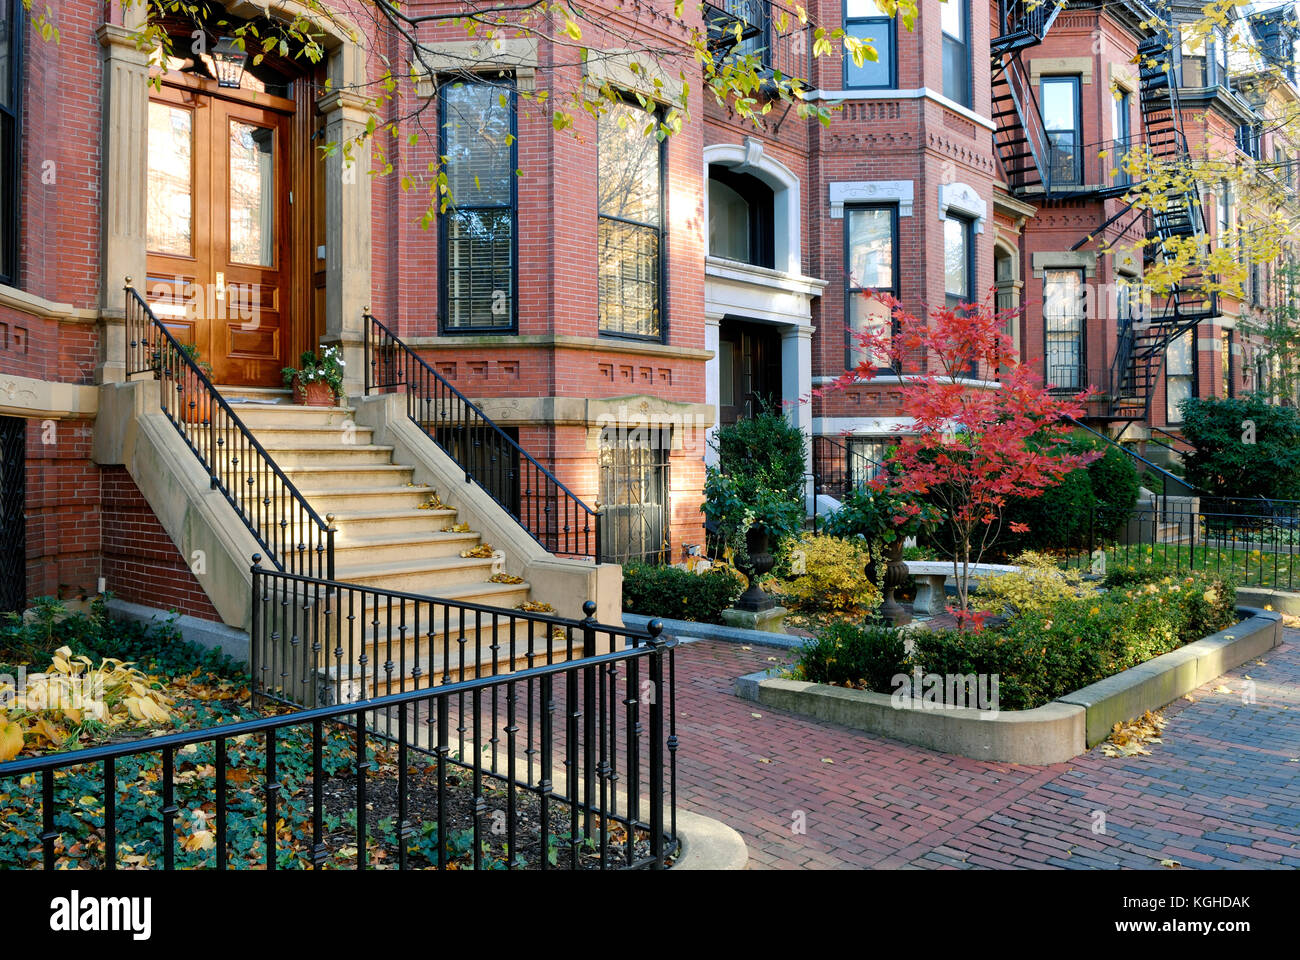 Elegant apartment buildings of Back Bay, Boston. Brick ...